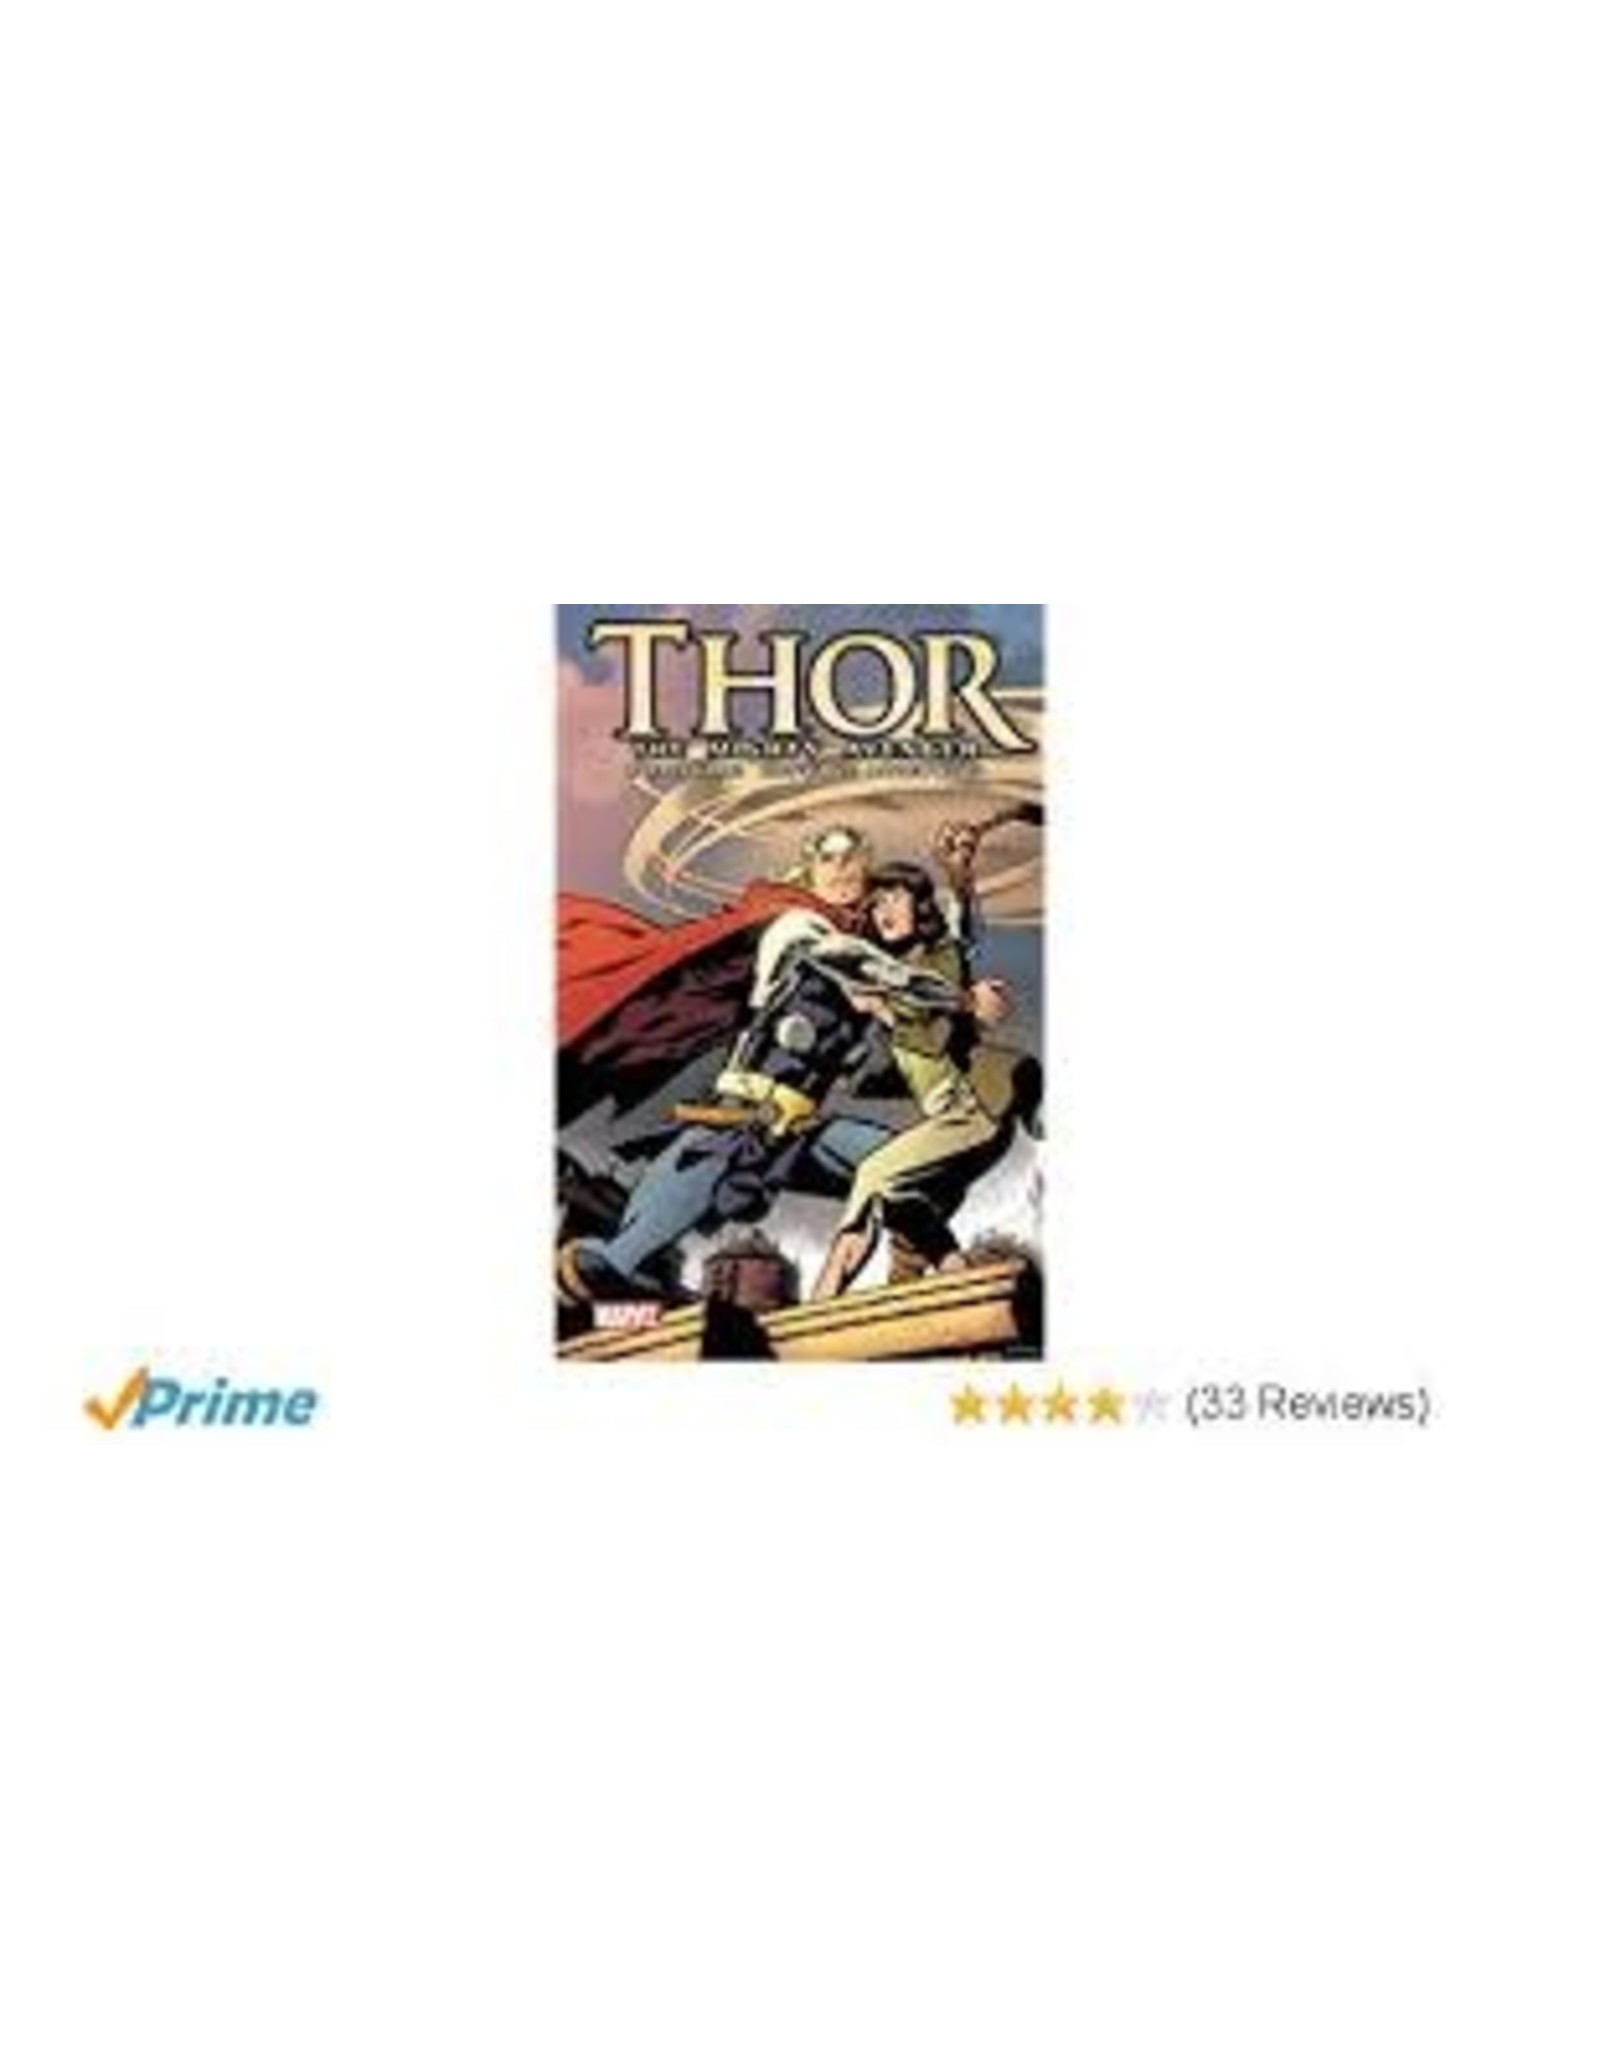 MARVEL COMICS THOR MIGHTY AVENGER GN TP VOL 01 GOD WHO FELL INTO EARTH